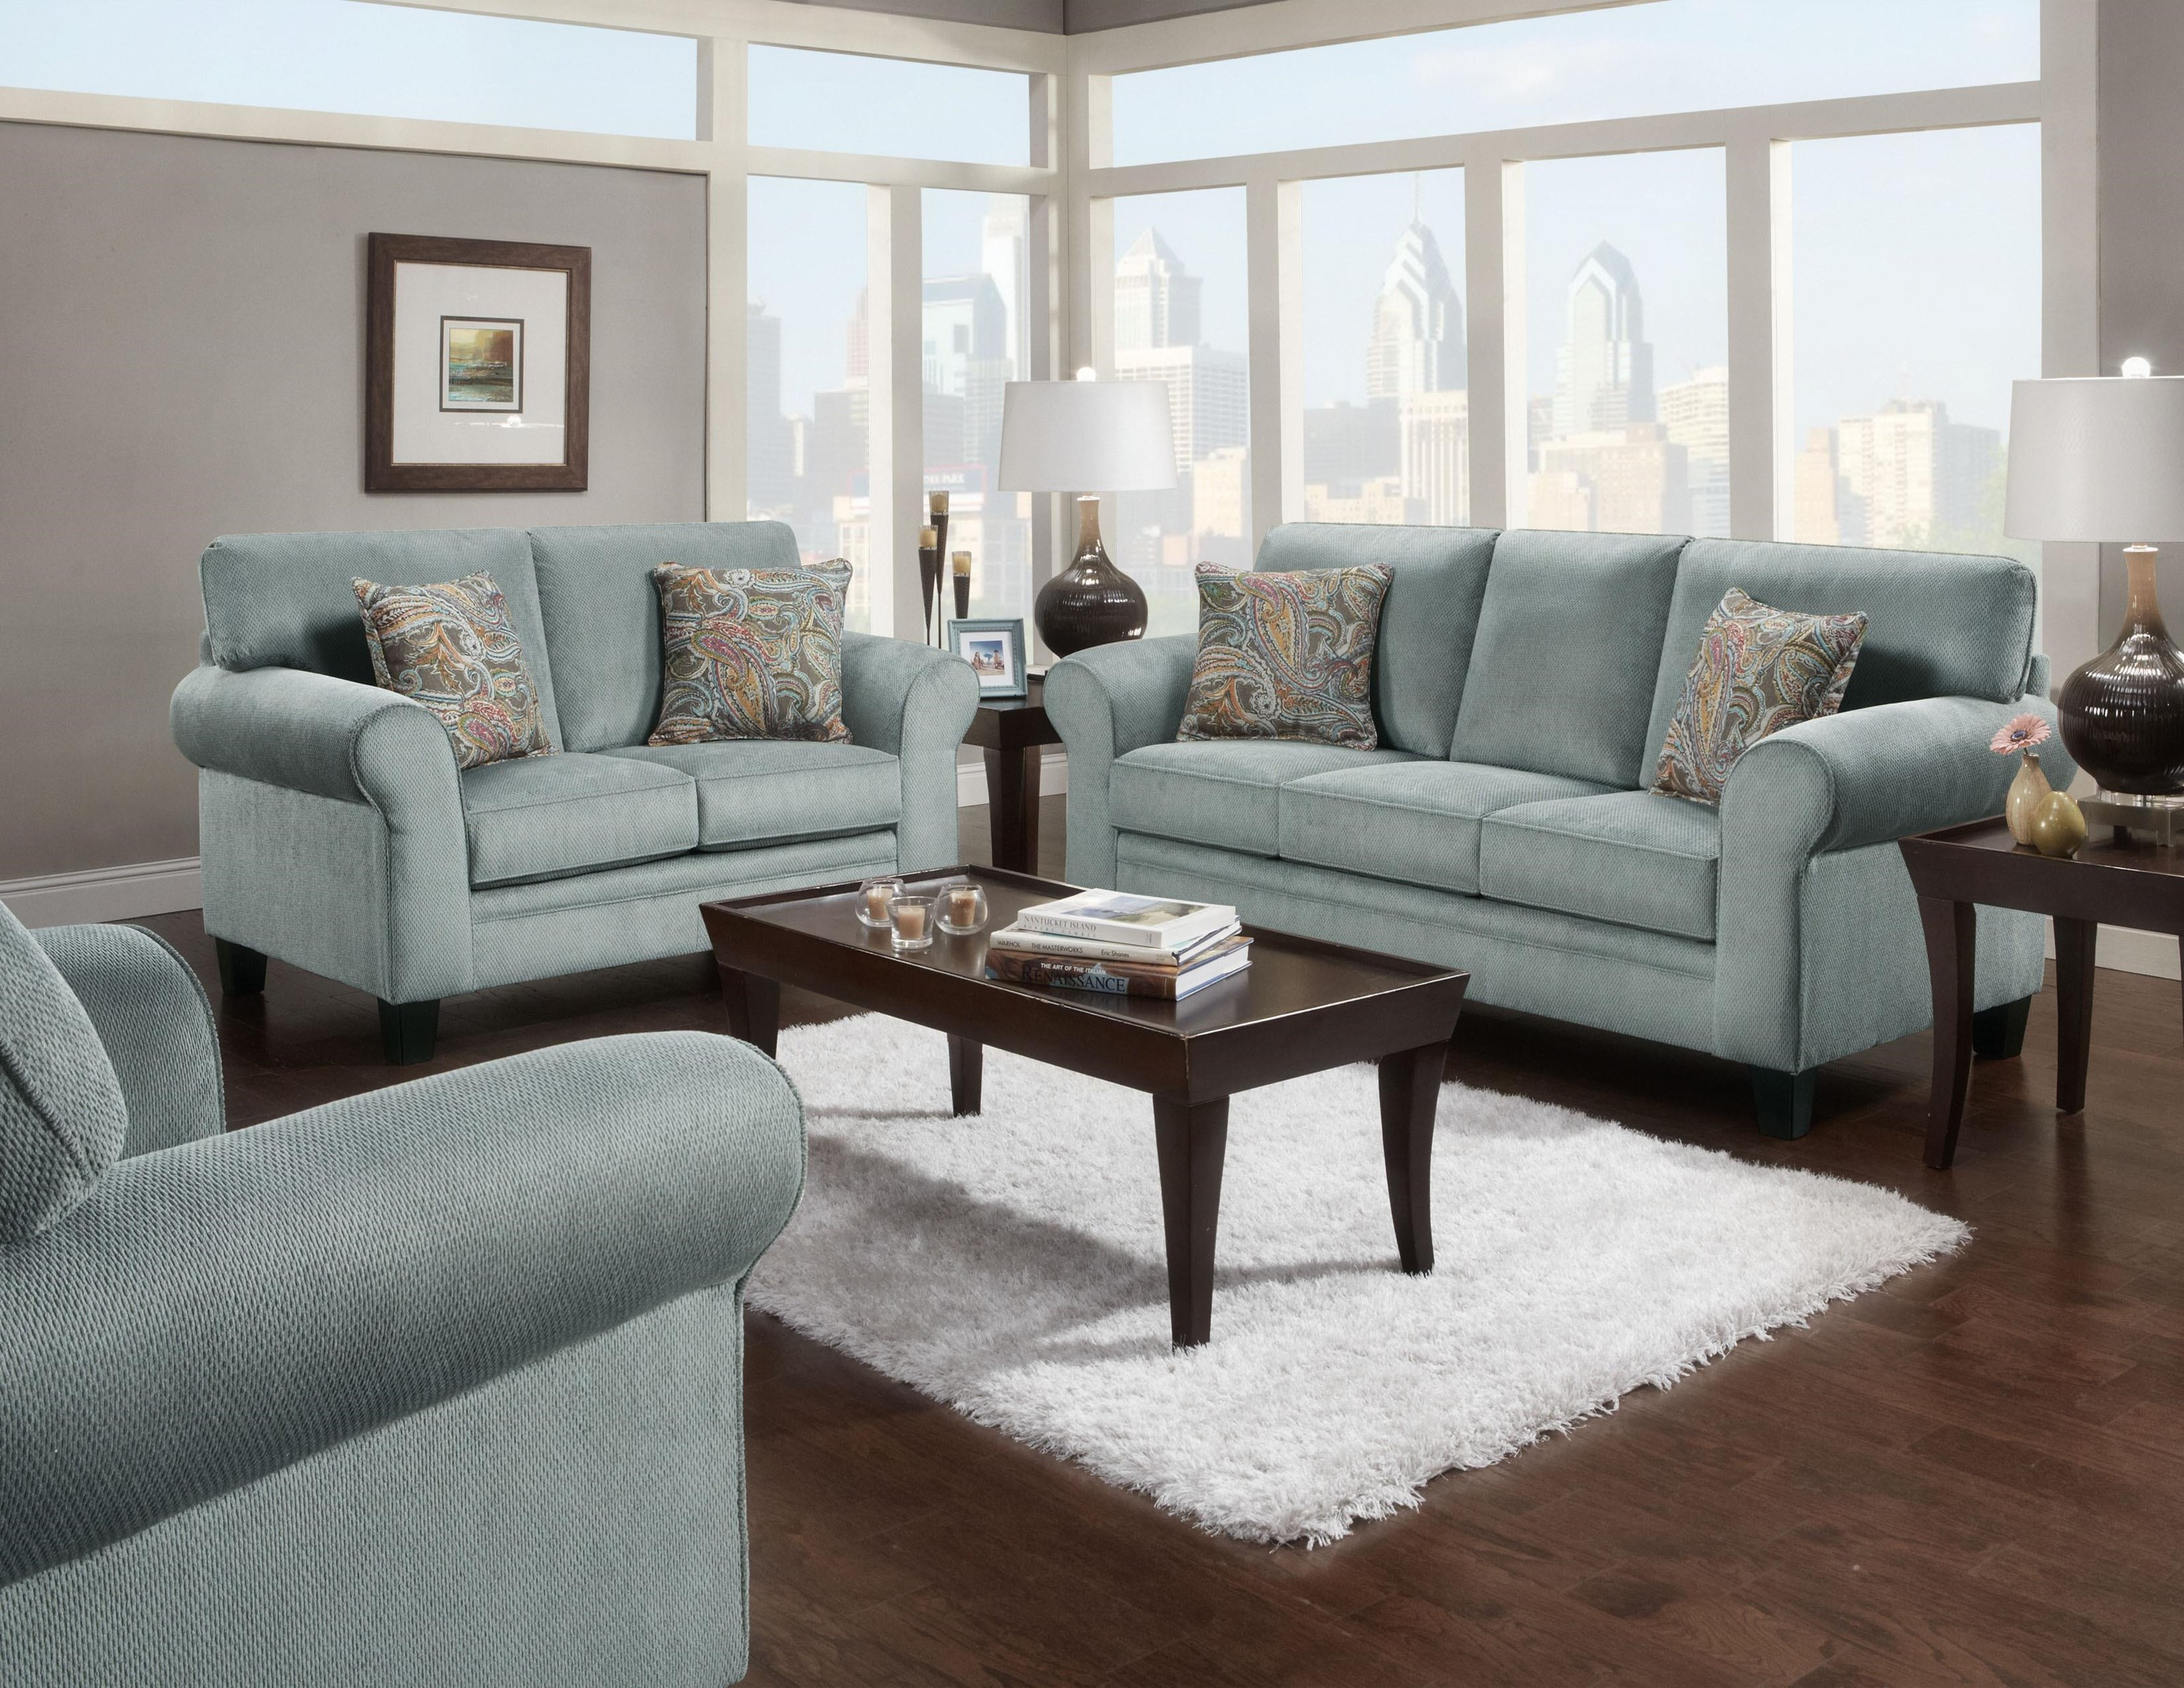 Transitional style sofa by j henry wolf and gardiner for Transitional style